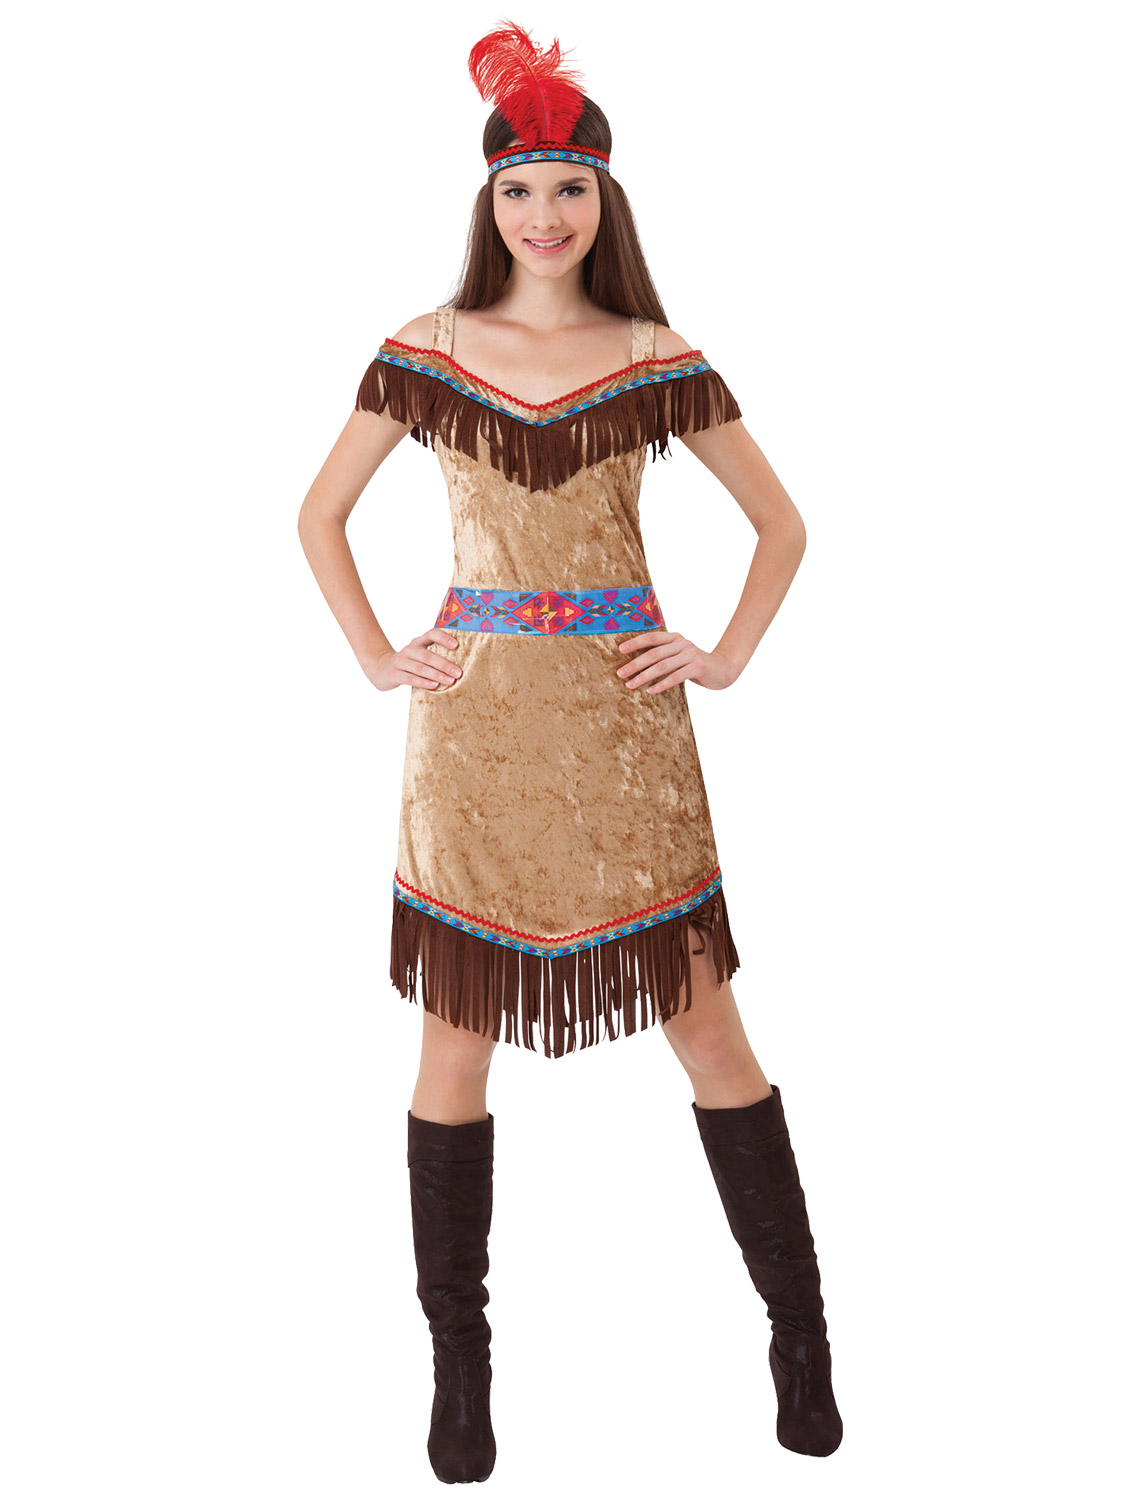 Ladies Deluxe Red Indian Native American Costume -4356